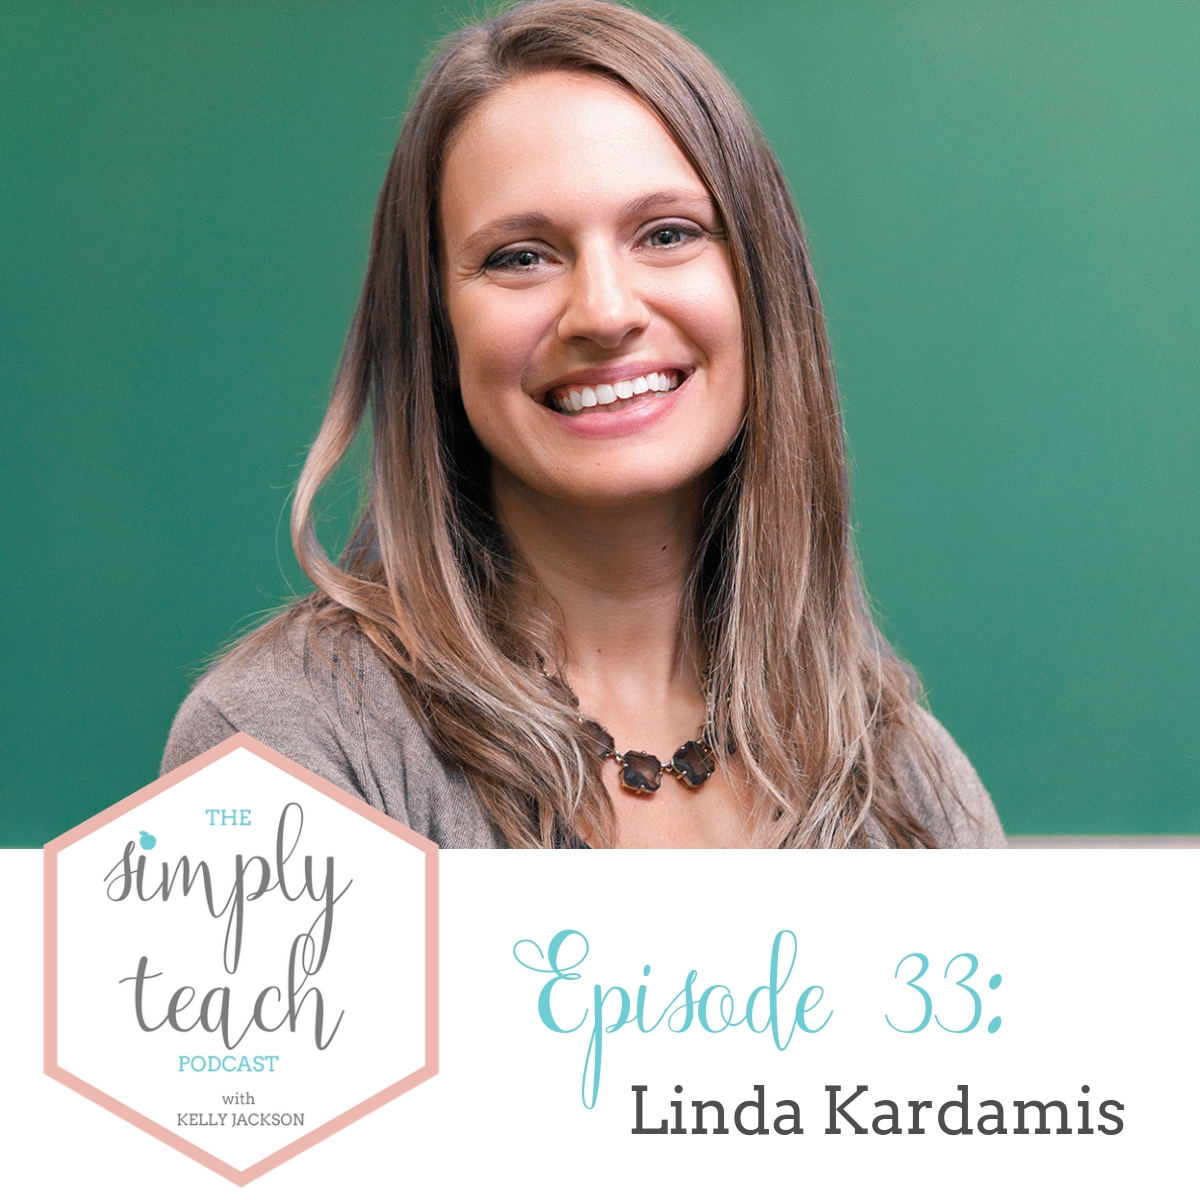 Simply Teach- a podcast for teachers, by teachers. In today's episode Linda shares her path to learning about the importance of implementing classroom management from day one. She gives some ideas for how you can move past the basic classroom management strategies and seek to build a culture and community in your classroom. We also talk about the importance of stress management and how you can practice the idea of Sabbath, even in the middle of the craziness of teaching.